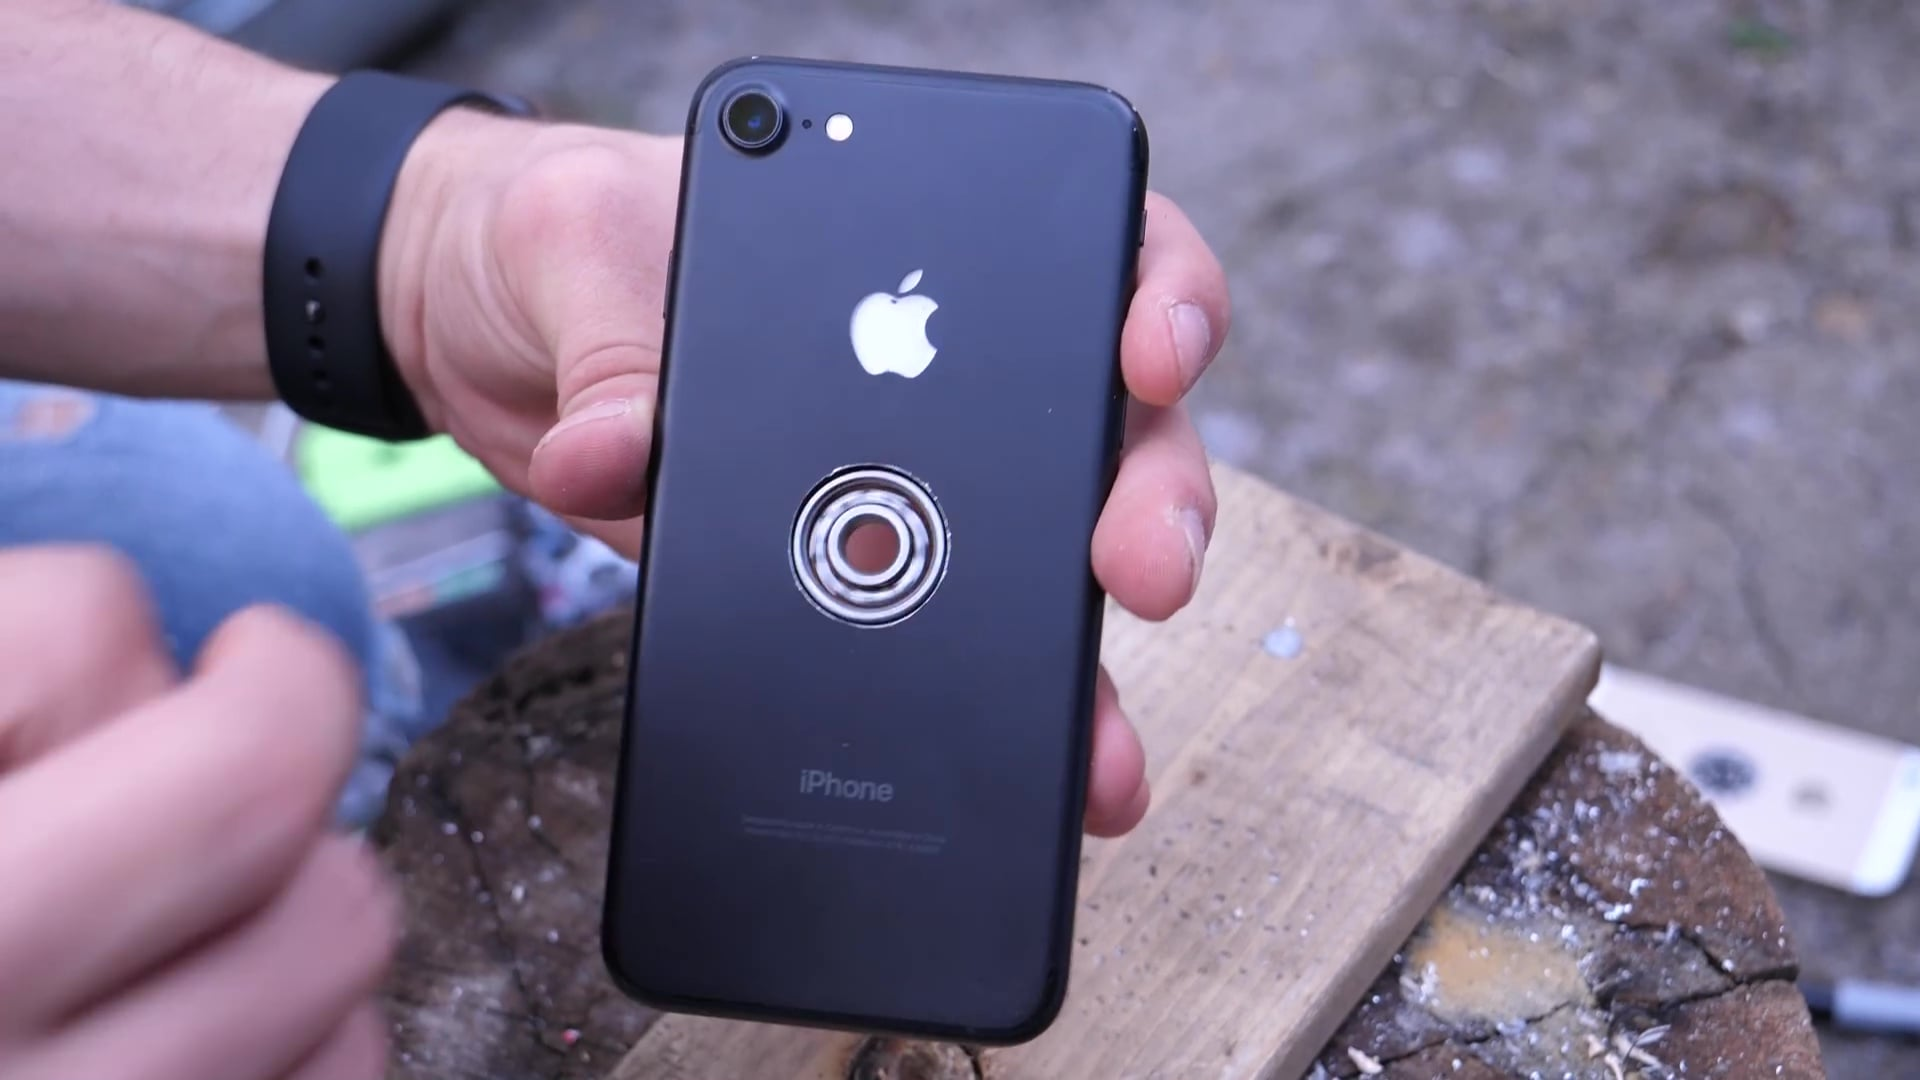 IPhone7 HandSpinnerDIY 03